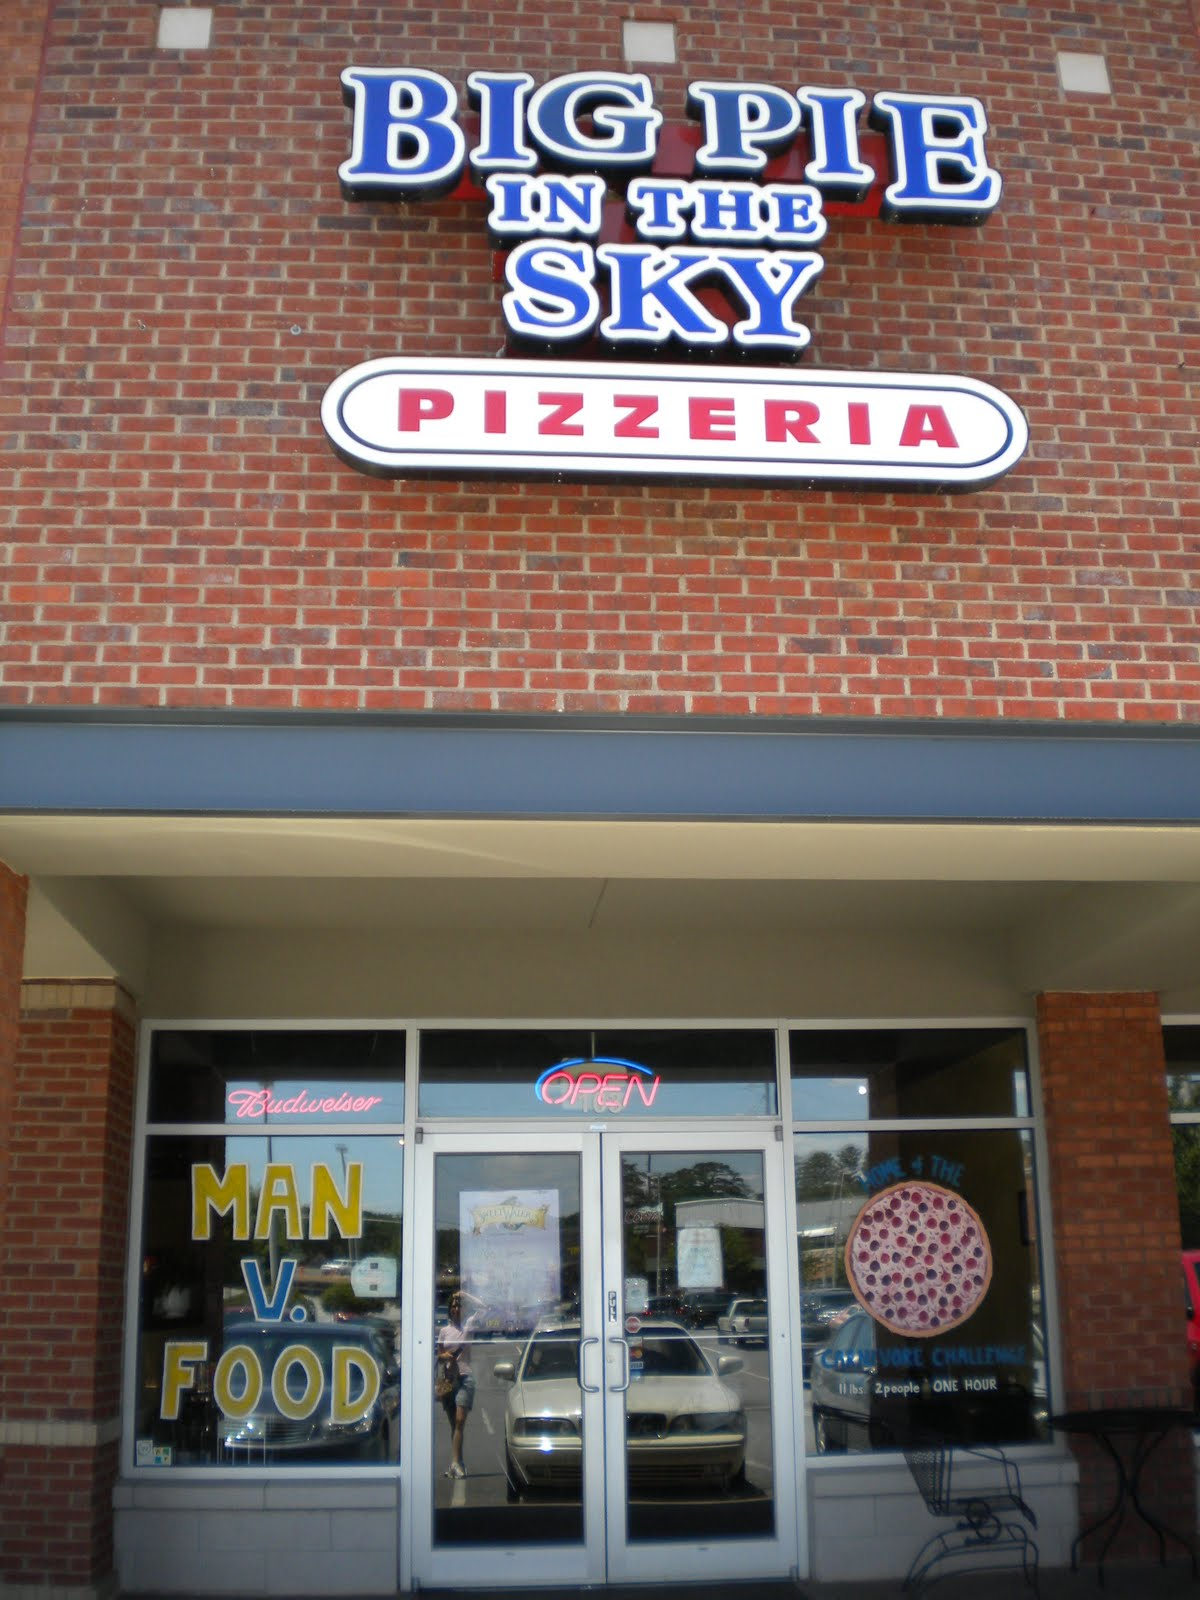 Big Pie In The Sky Pizzeria